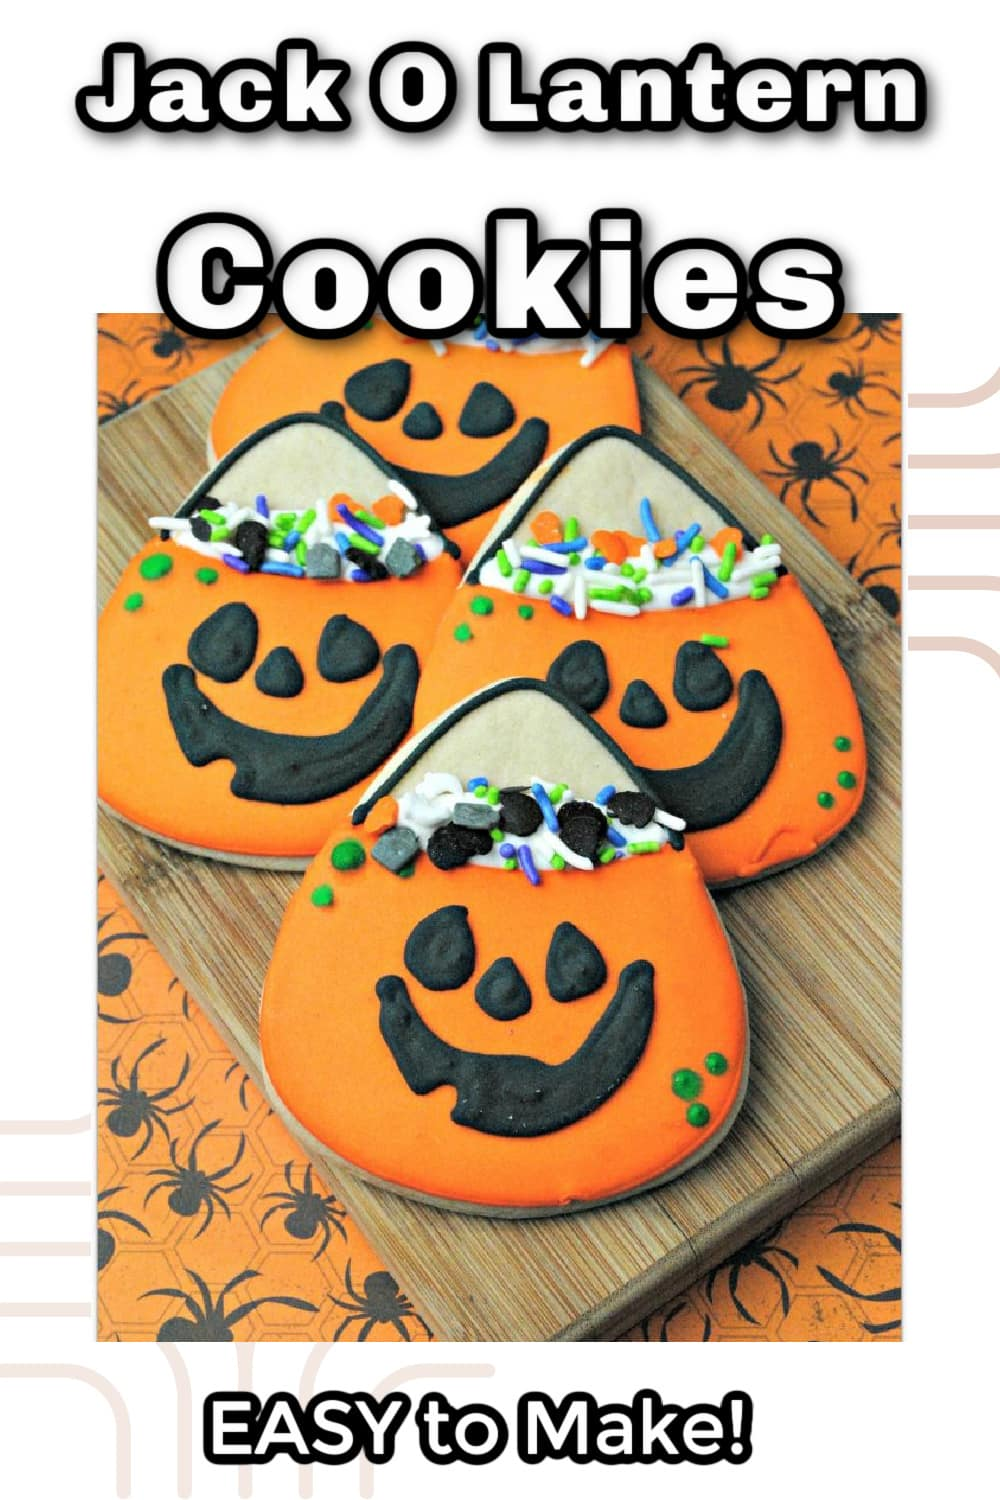 Jack O'lantern cookies are so easy to make!